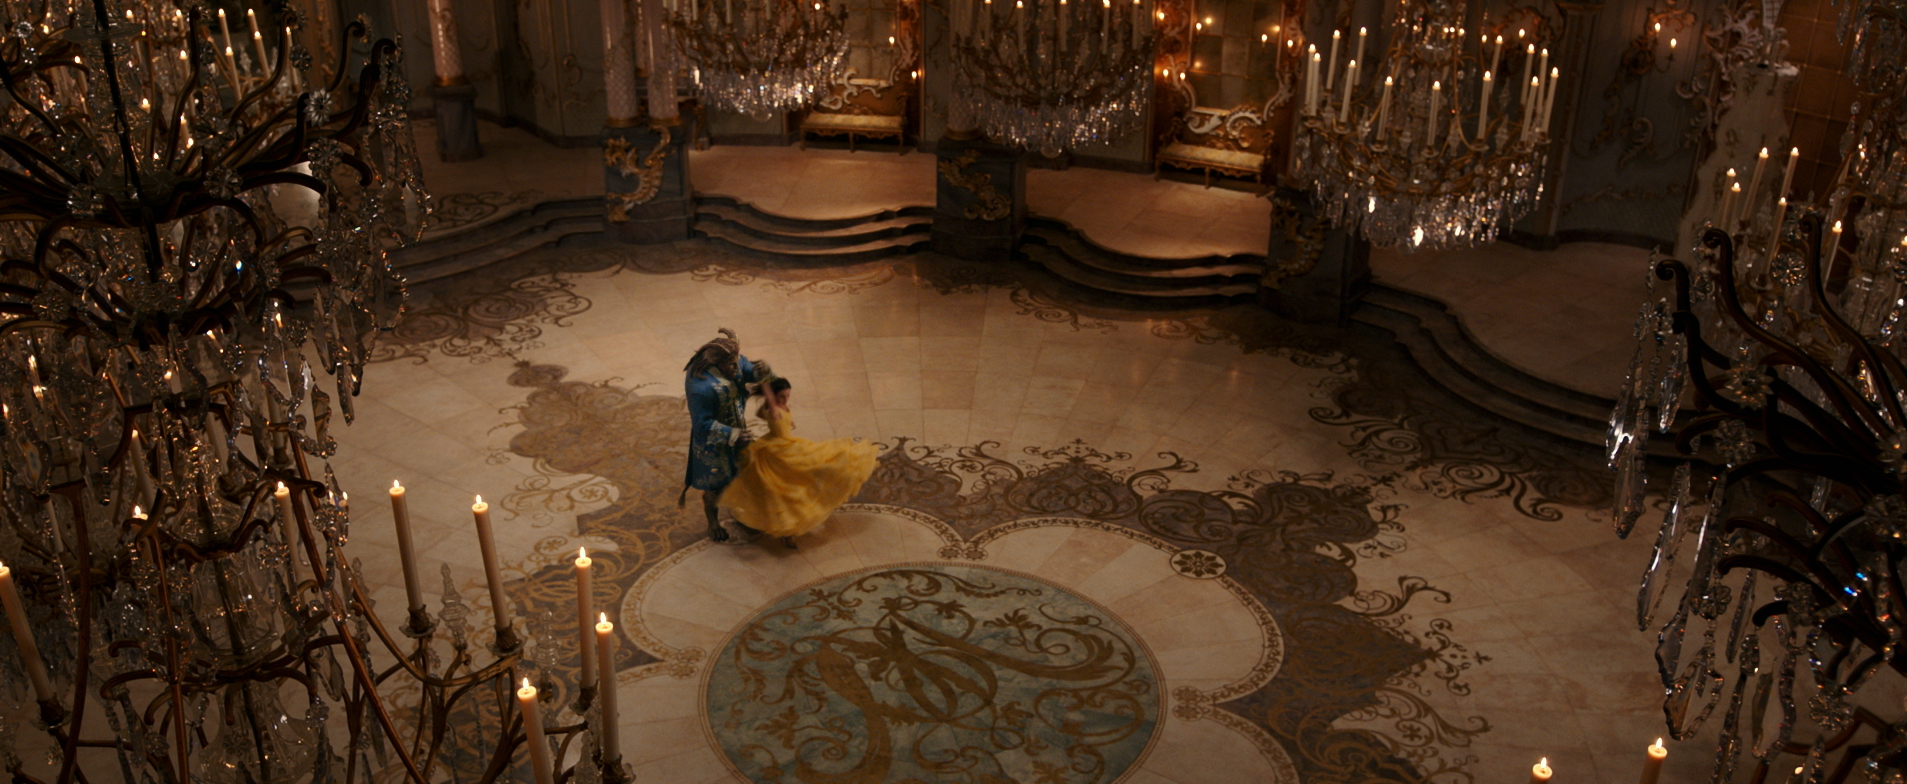 Belle (Watson) and Beast (Stevens) dancing in the iconic ballroom scene. So gorgeous!